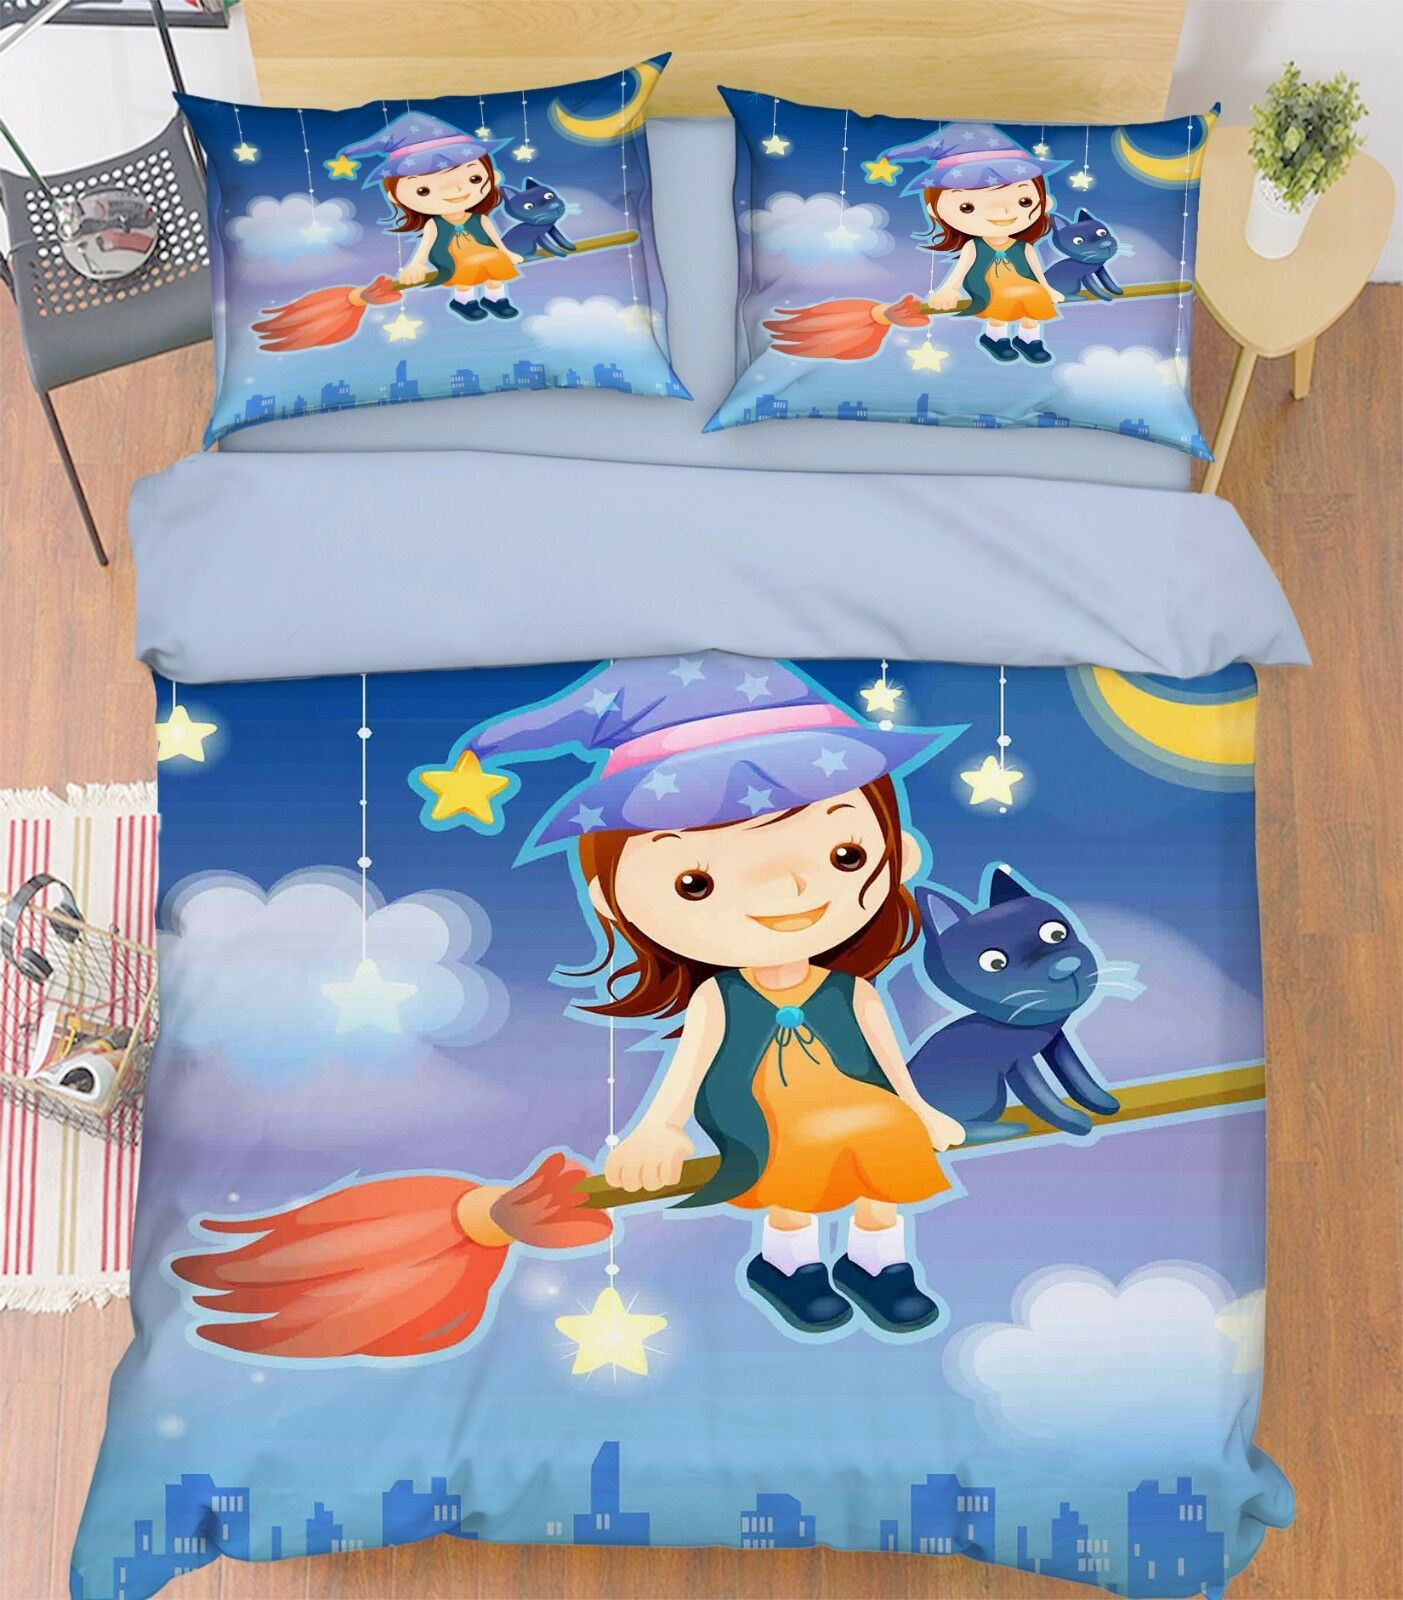 3D Broom Witch 786 Bed Pillowcases Quilt Duvet Cover Set Single Queen UK Carly